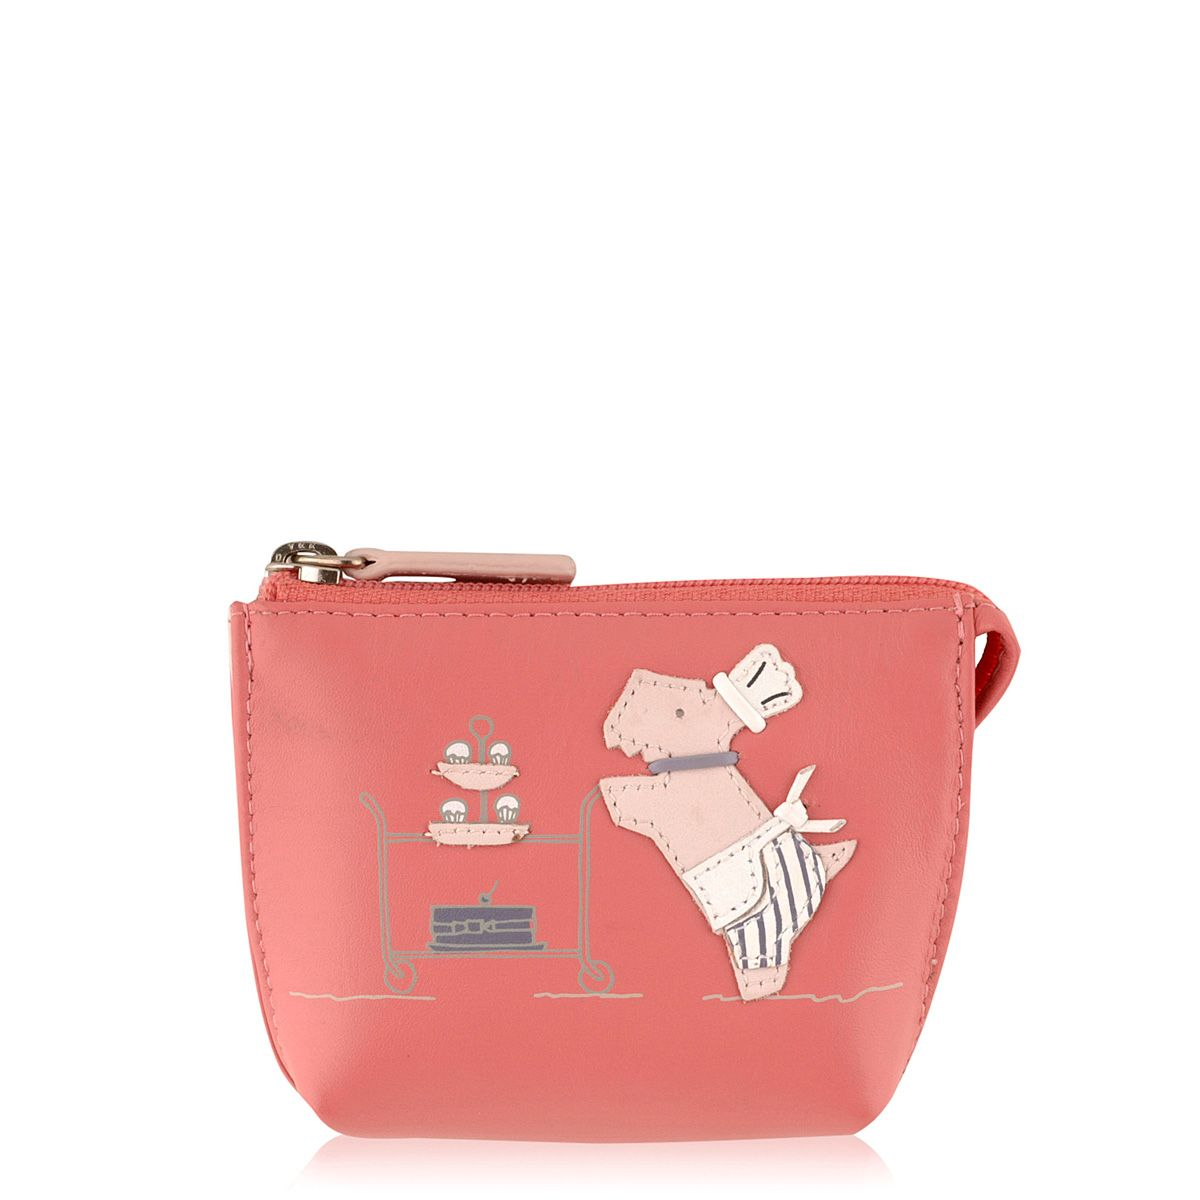 Patisserie Raderlie pink coin purse